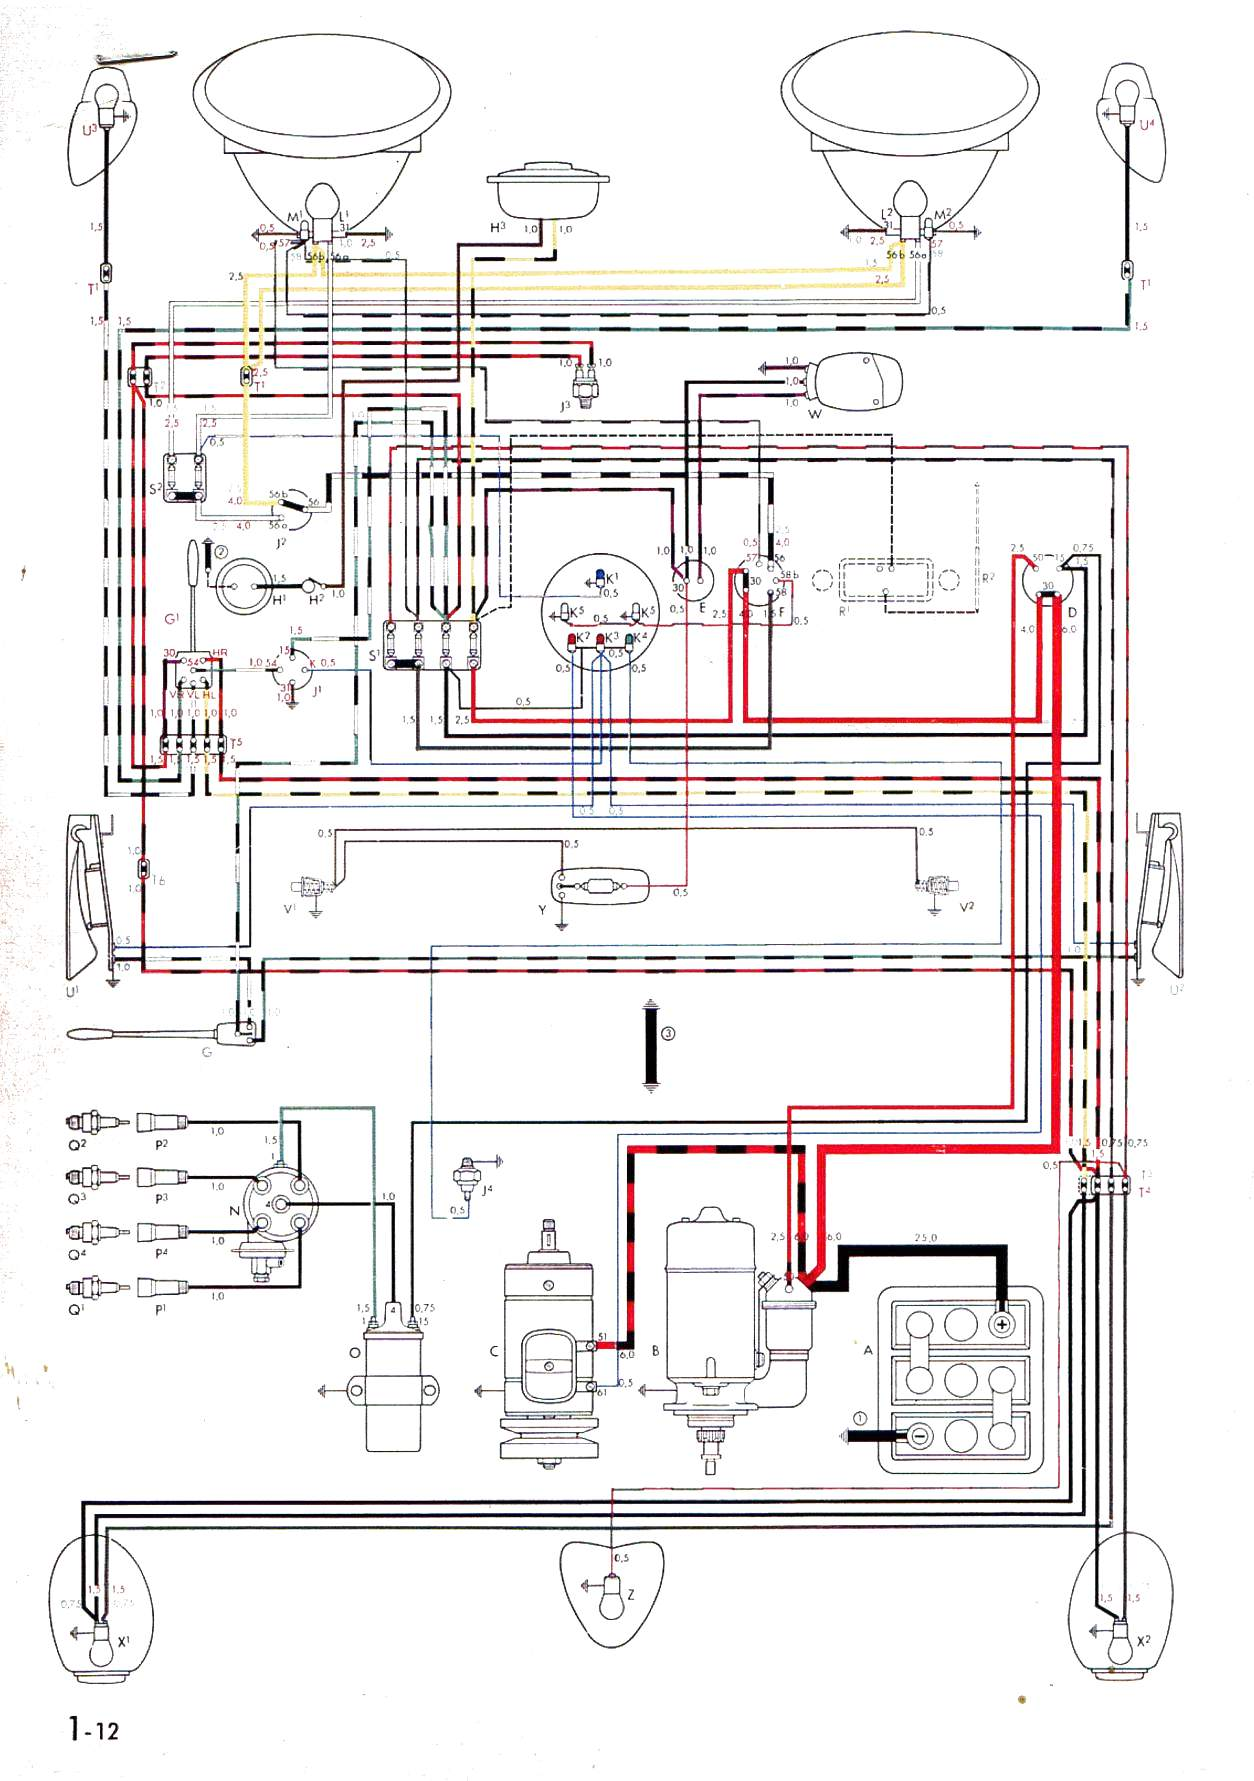 62 vw beetle wiring diagram wiring diagram